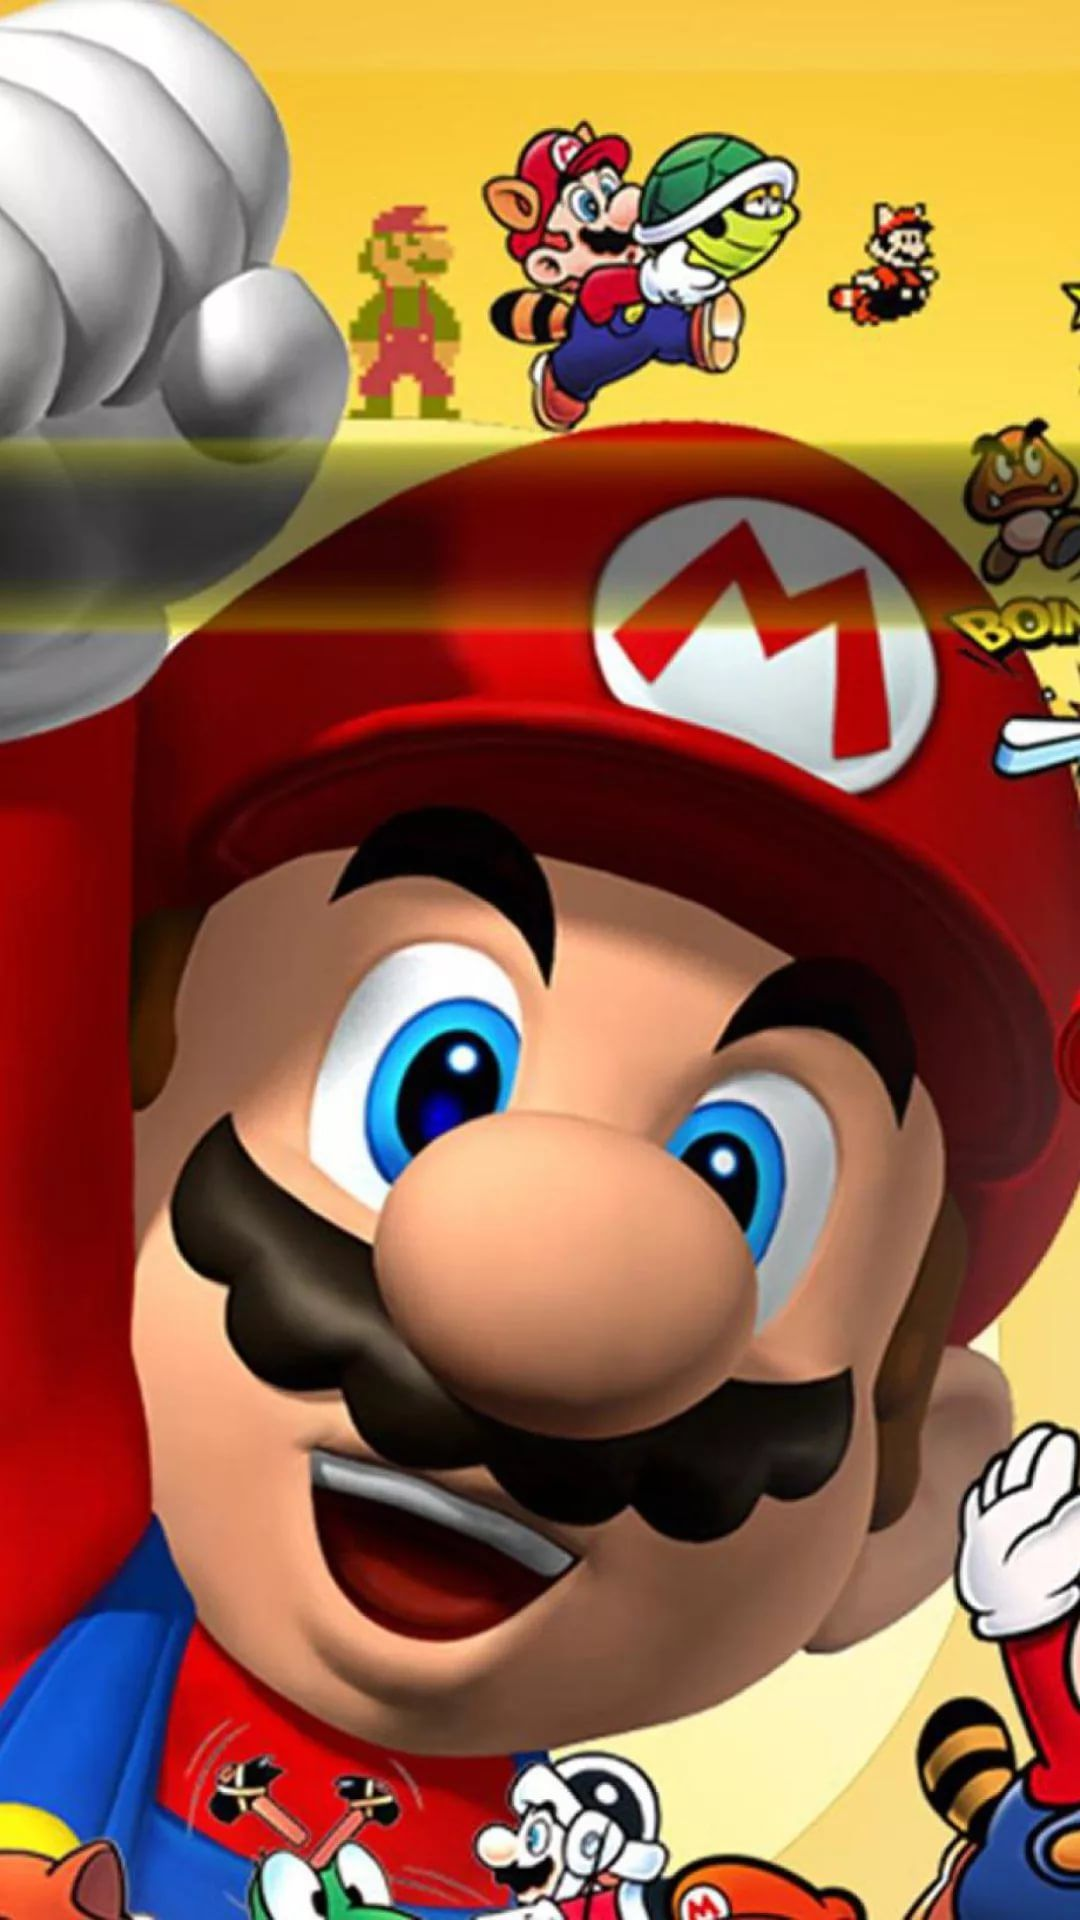 Mario wallpaper for android